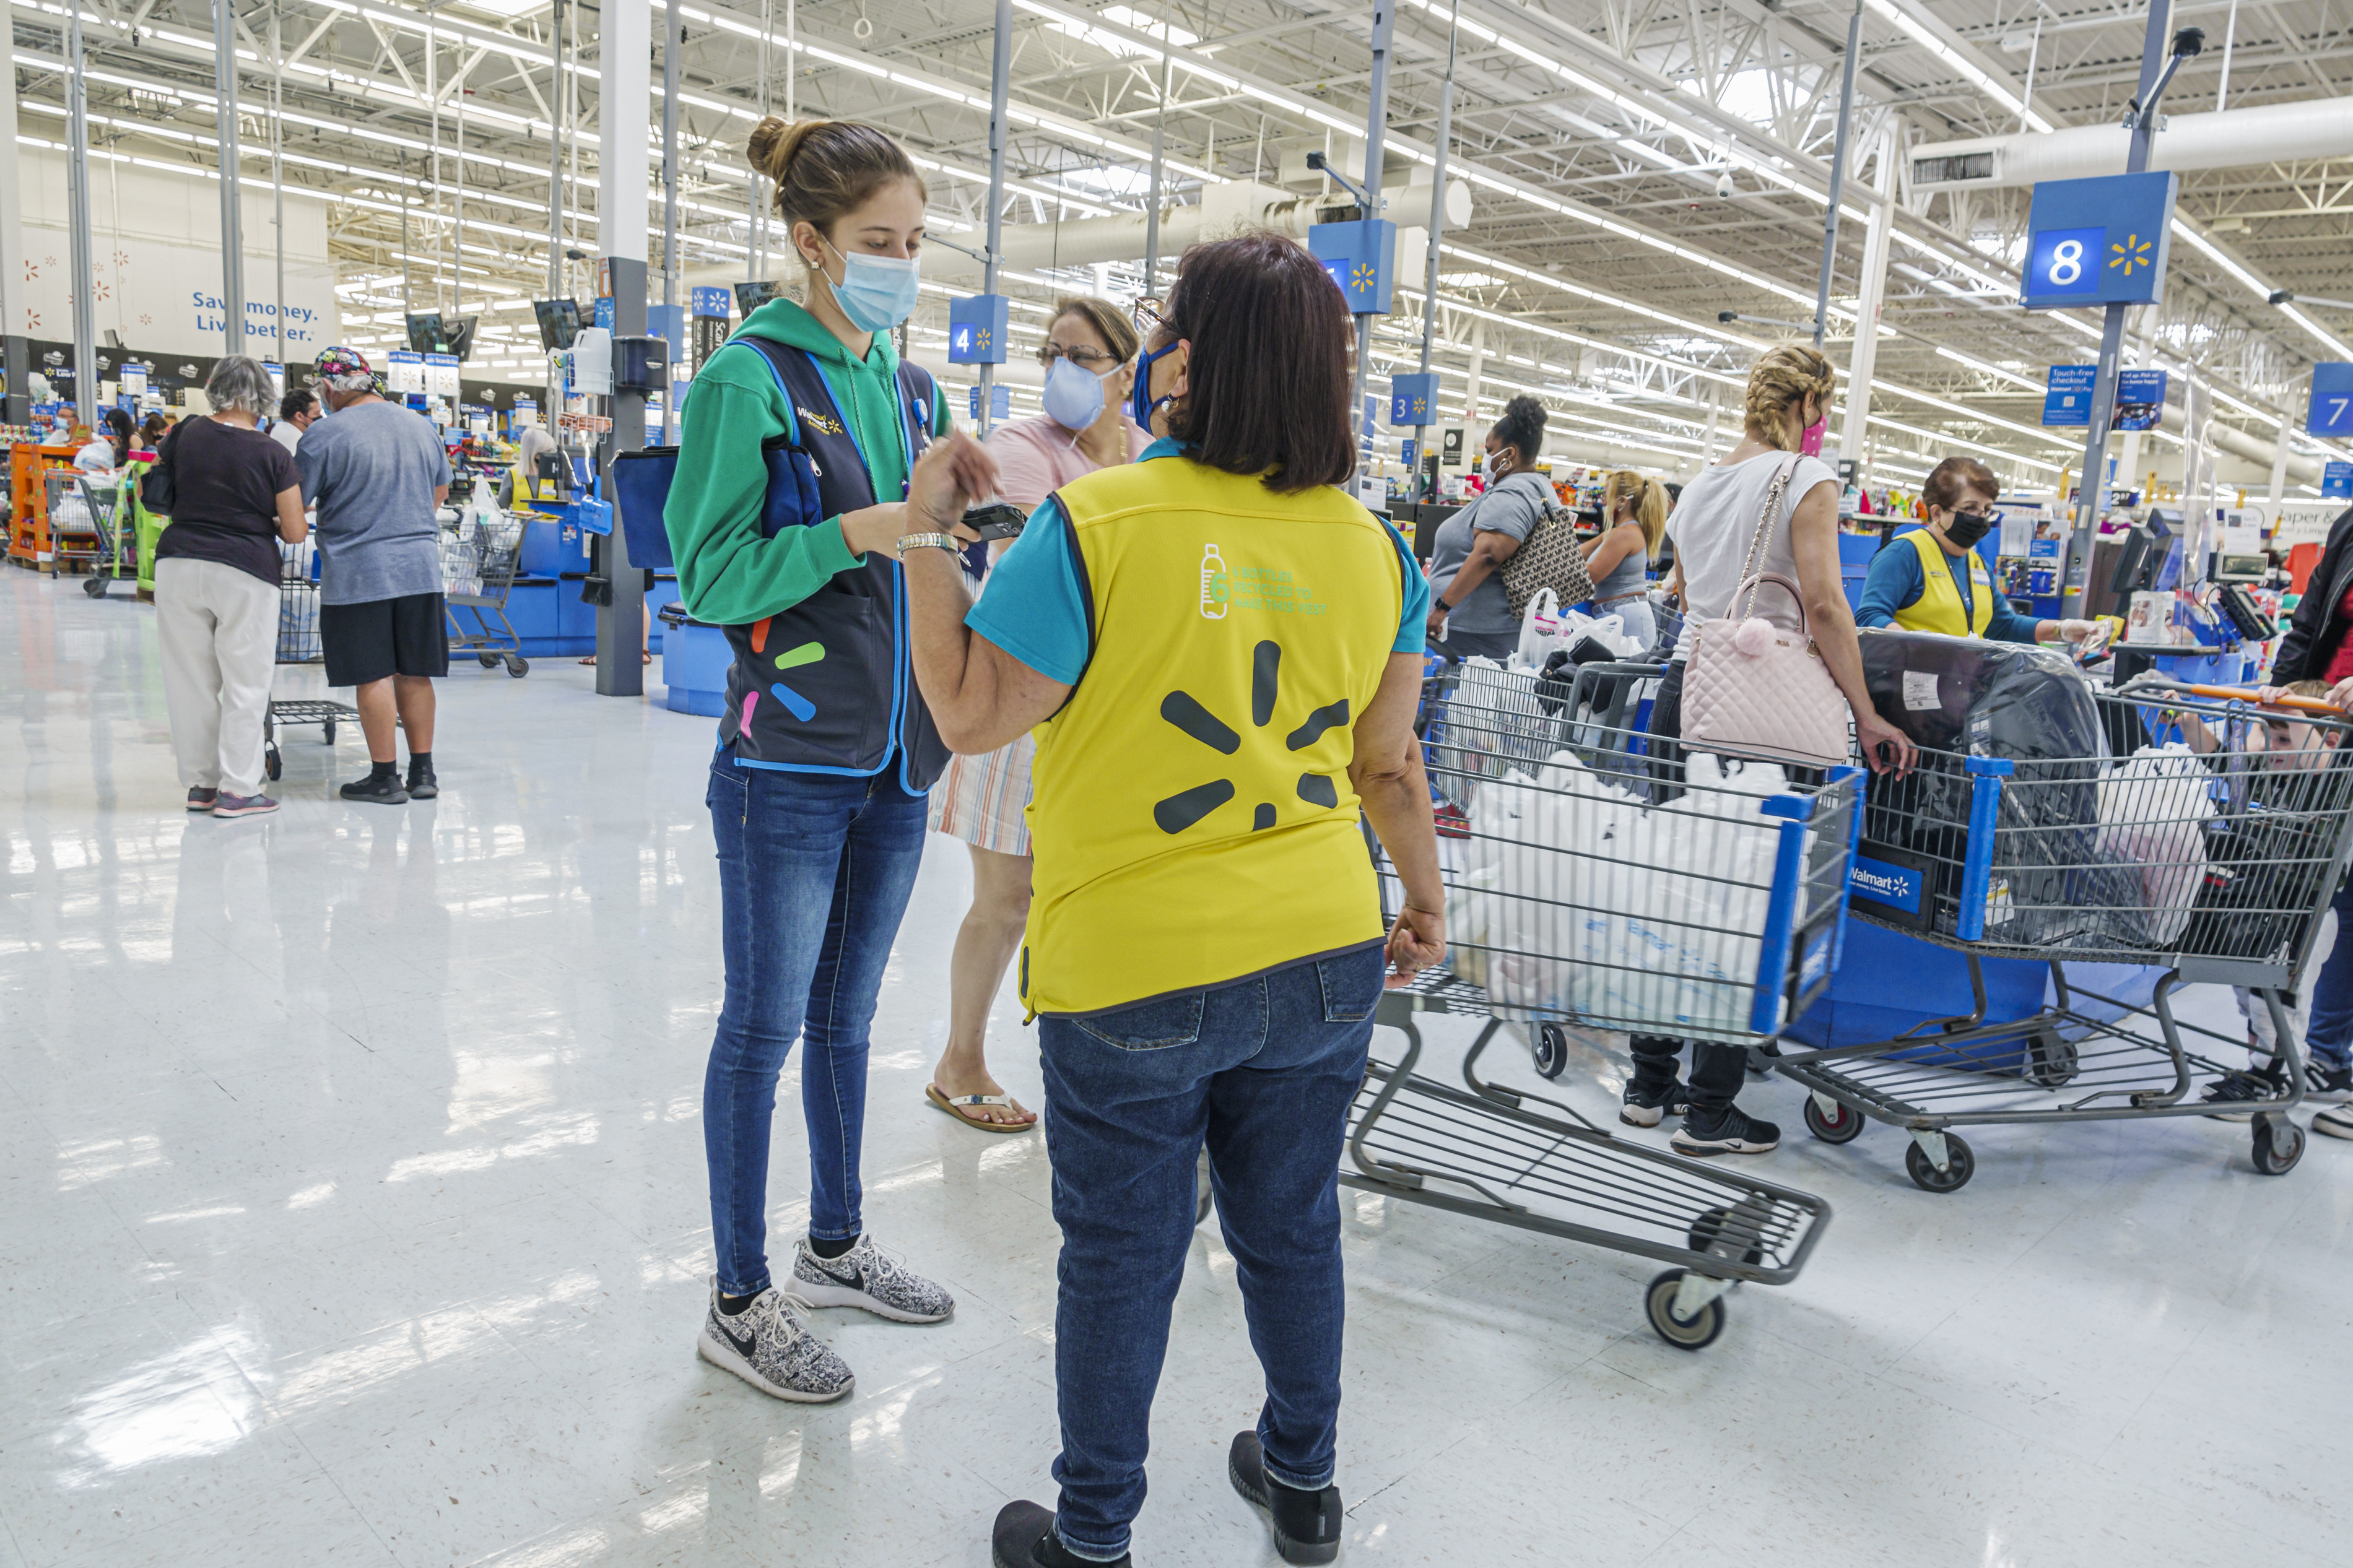 Two Walmart workers in masks talk to each other near a checkout line.